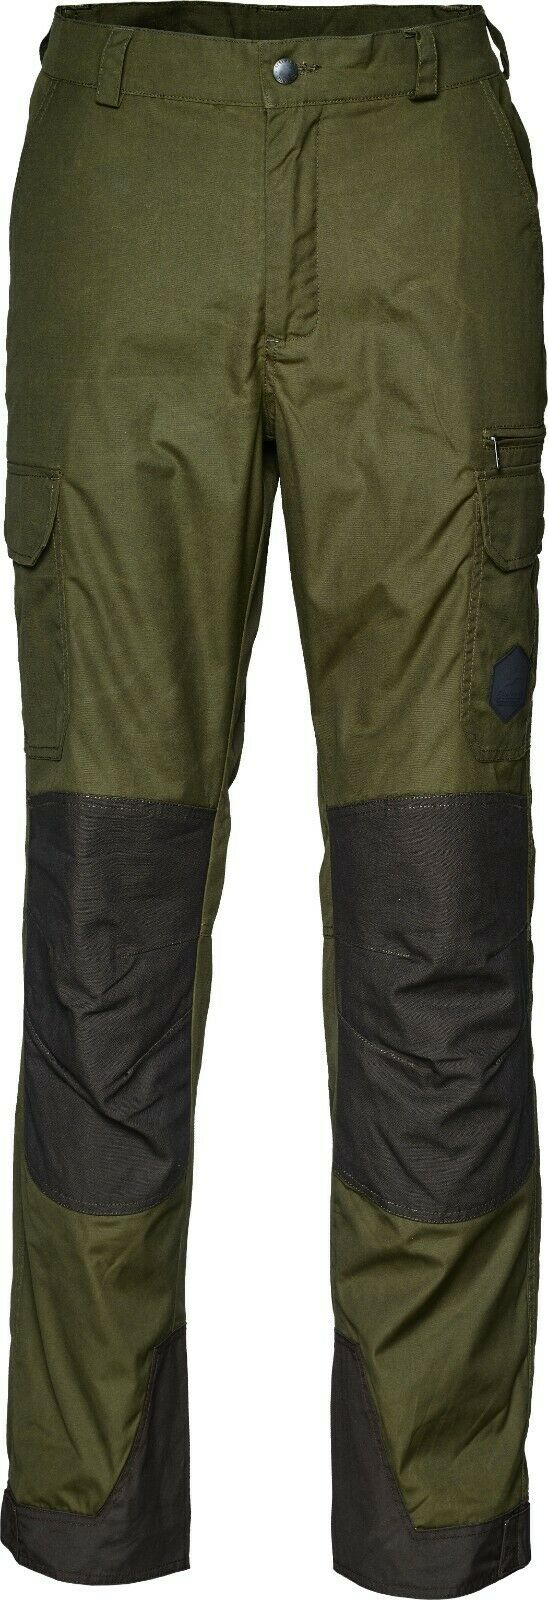 Seeland Key-Point Reinforced Hunting Shooting Trousers